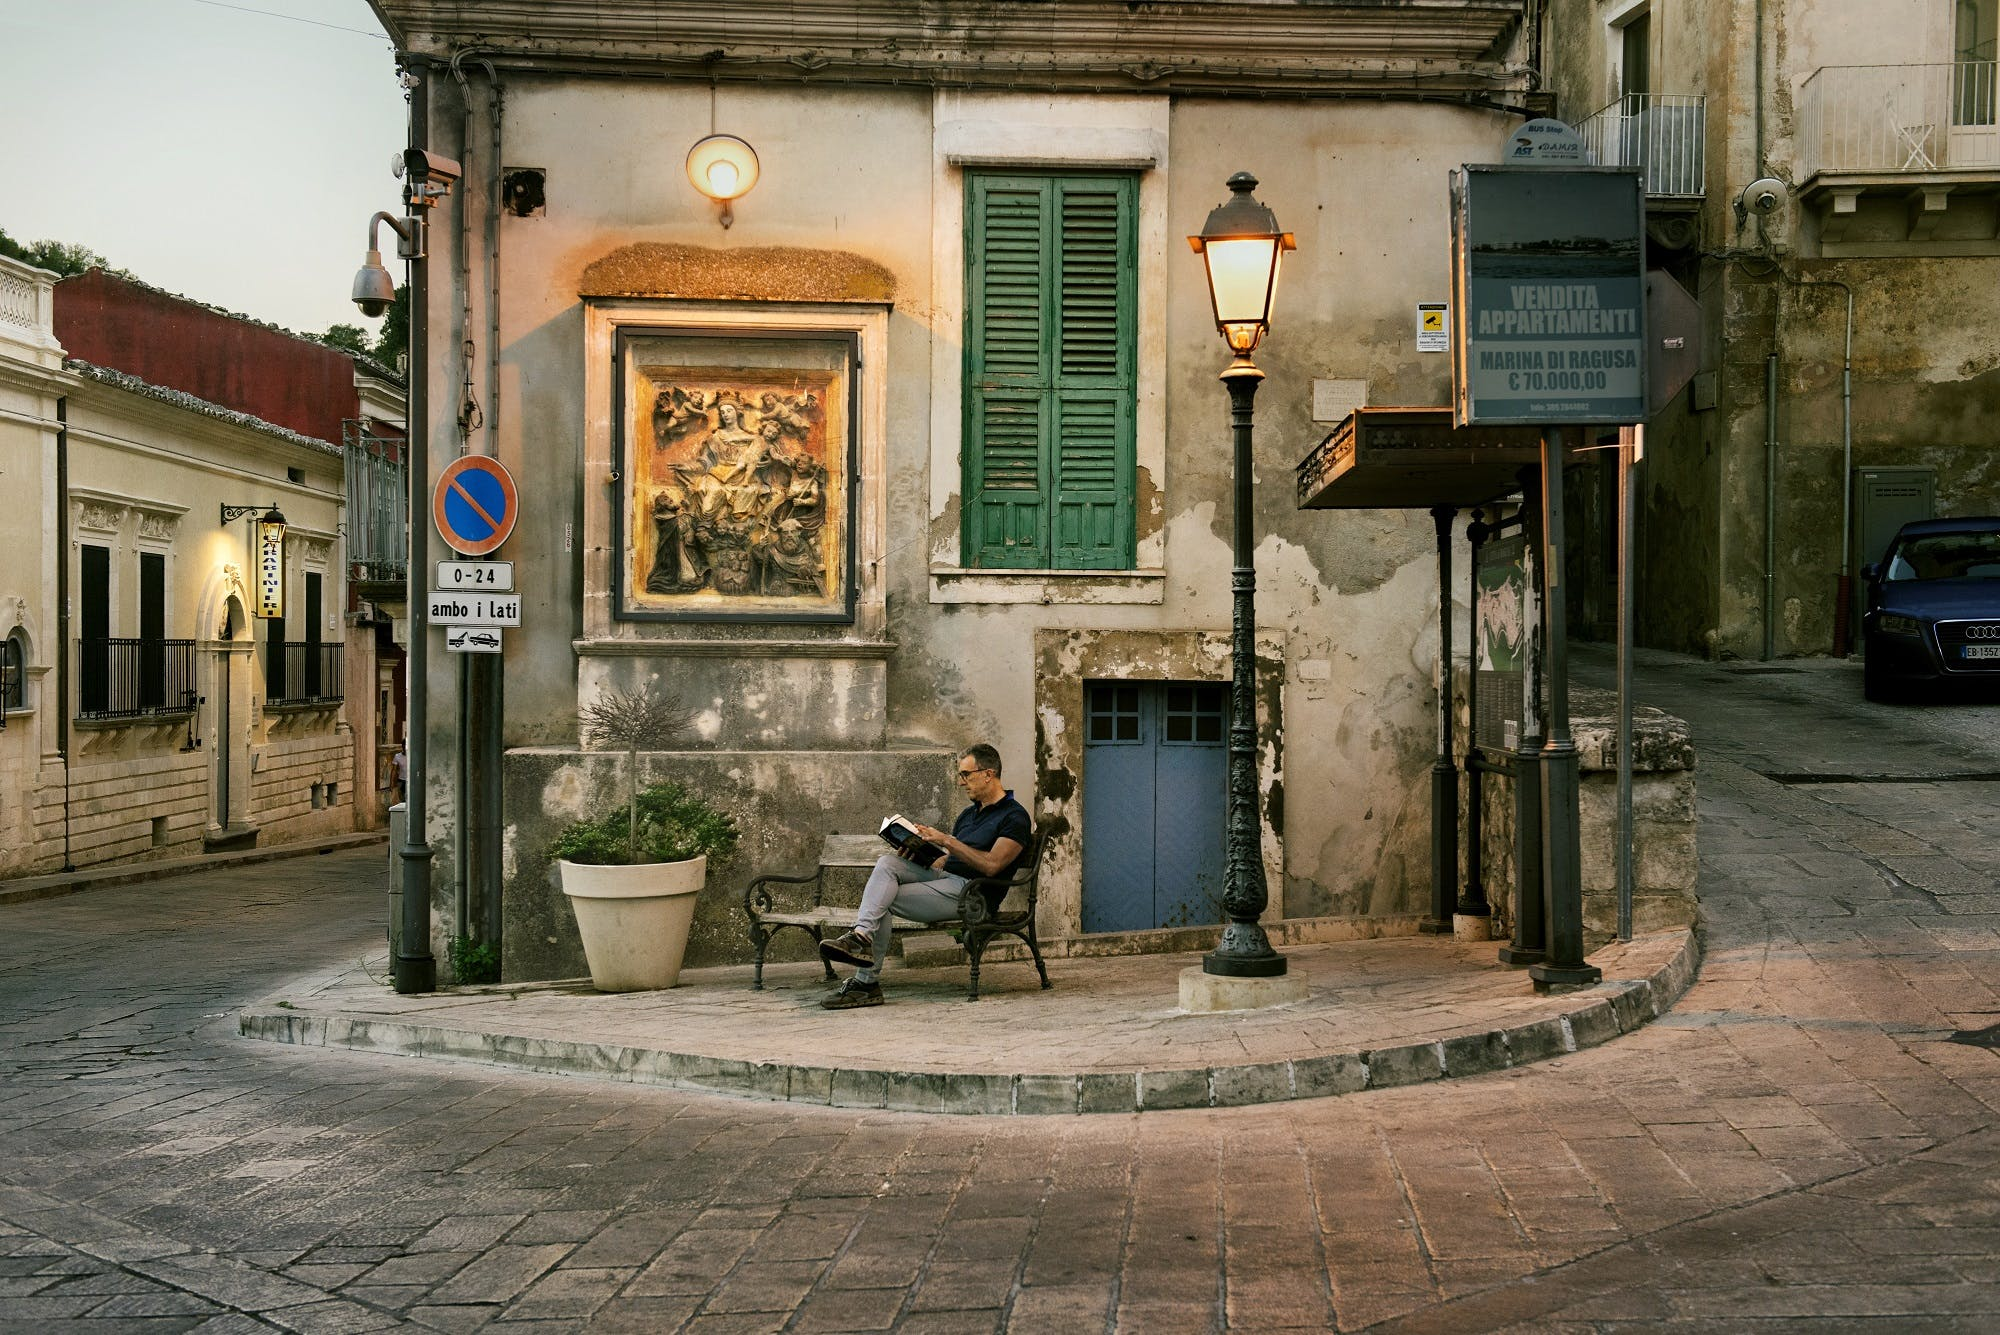 Sicily by Steve McCurry